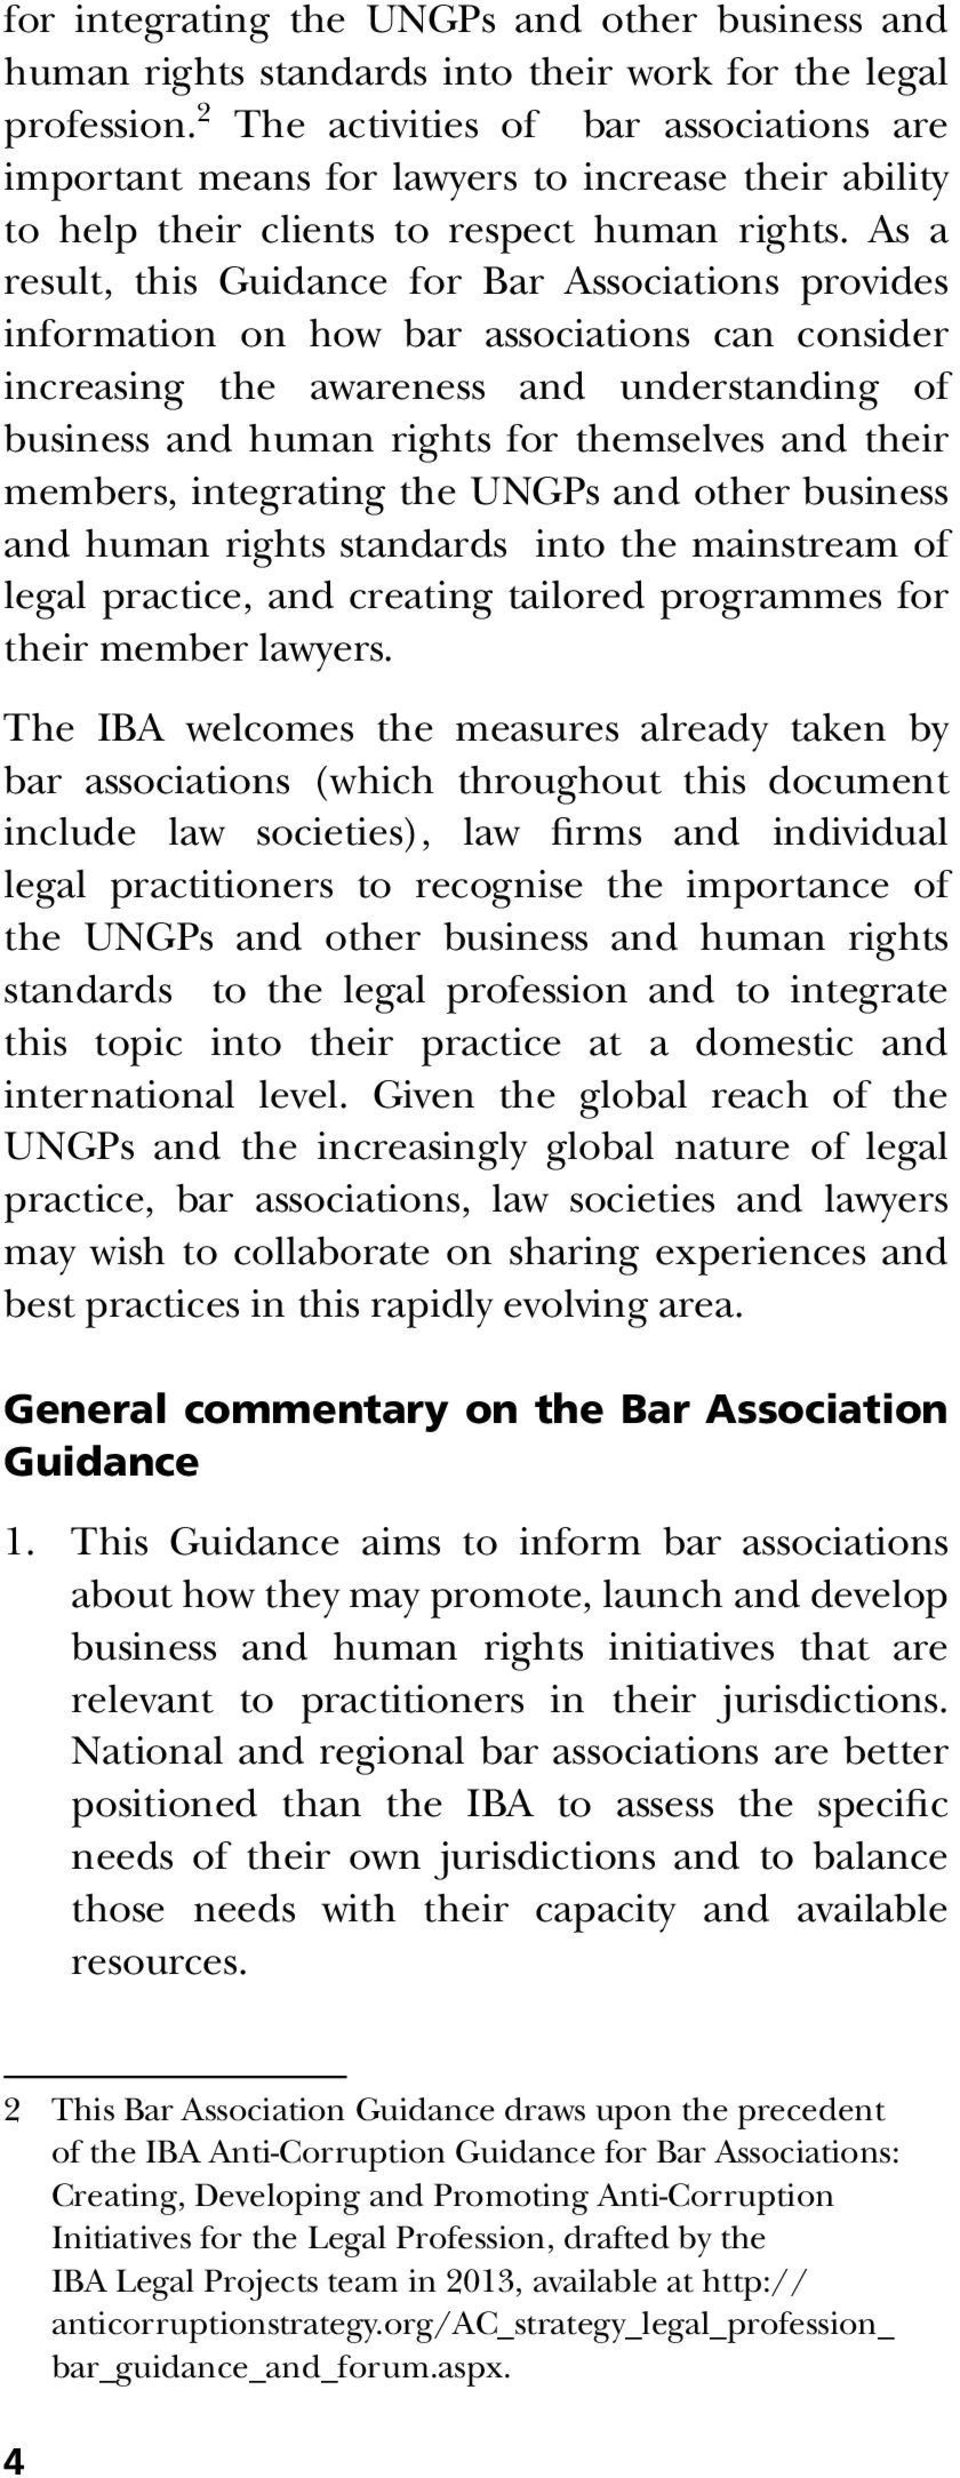 As a result, this Guidance for Bar Associations provides information on how bar associations can consider increasing the awareness and understanding of business and human rights for themselves and